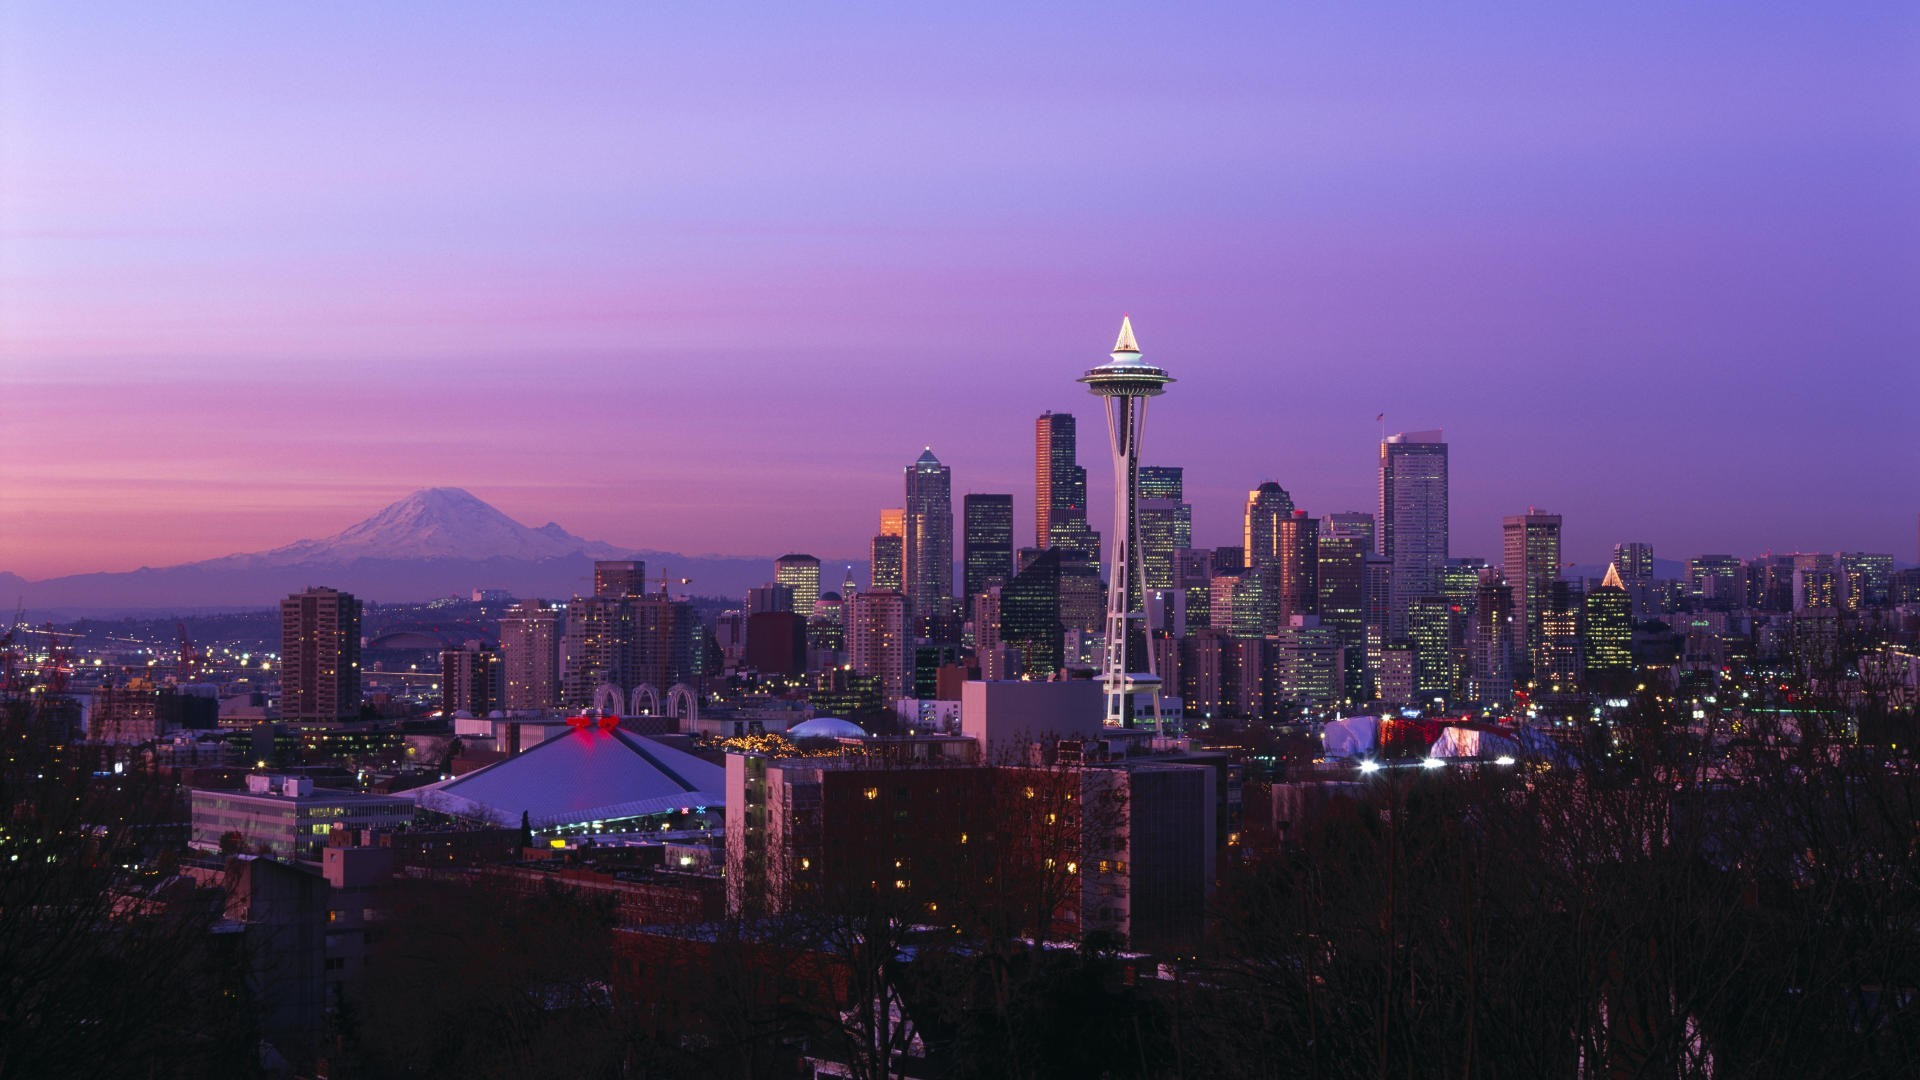 Seattle wallpaper 12792 1920x1080